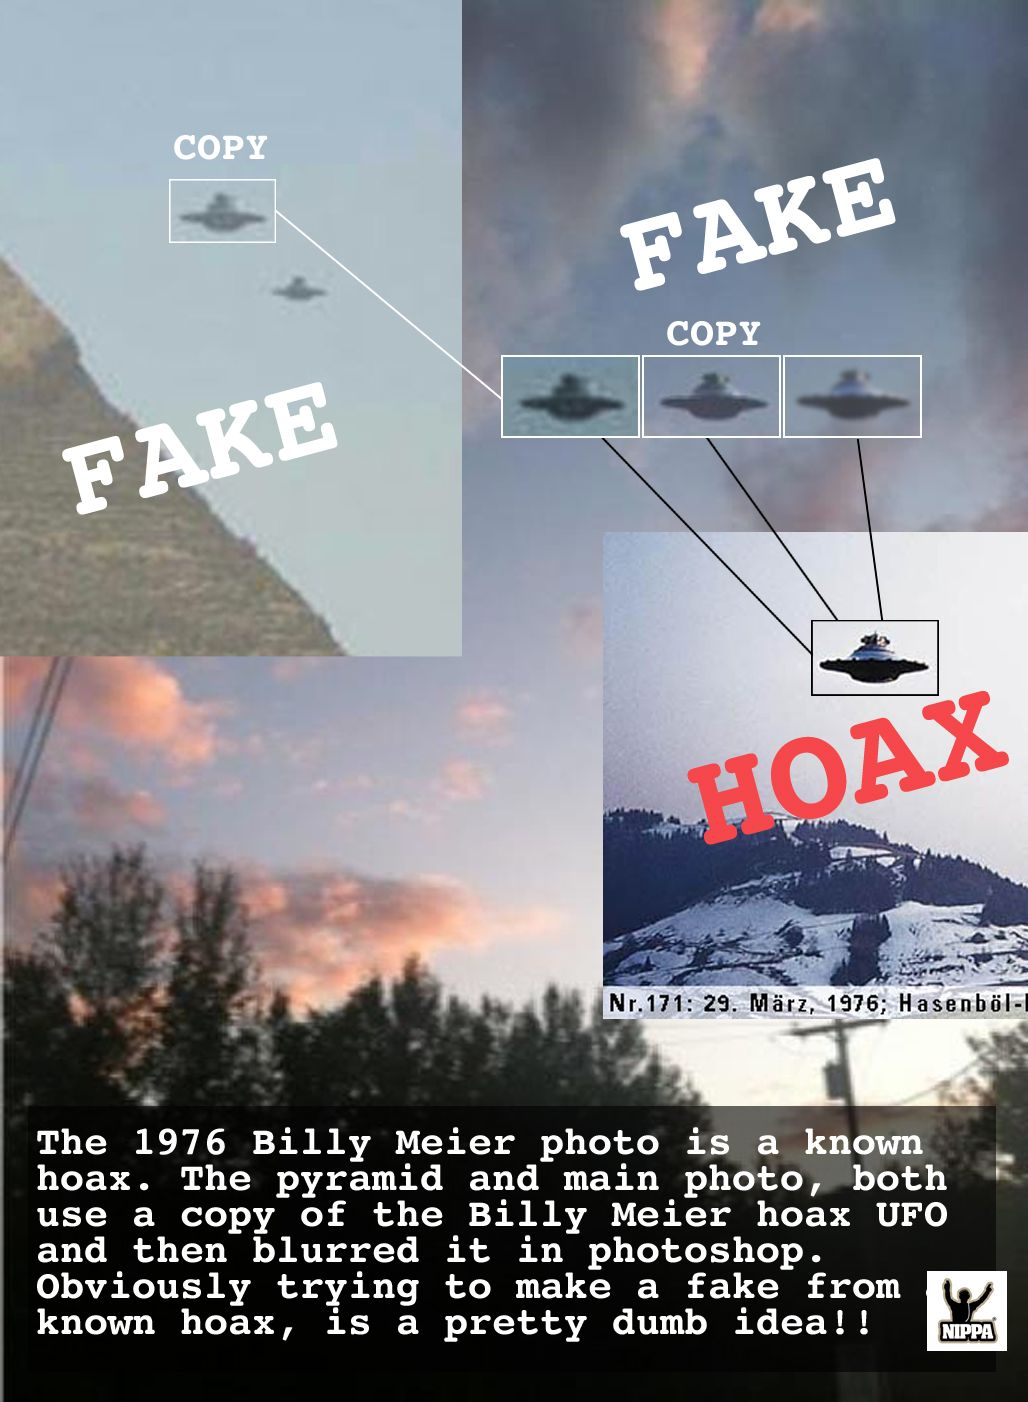 Two photos debunked in one  The 1976 Billy Meier photo is a